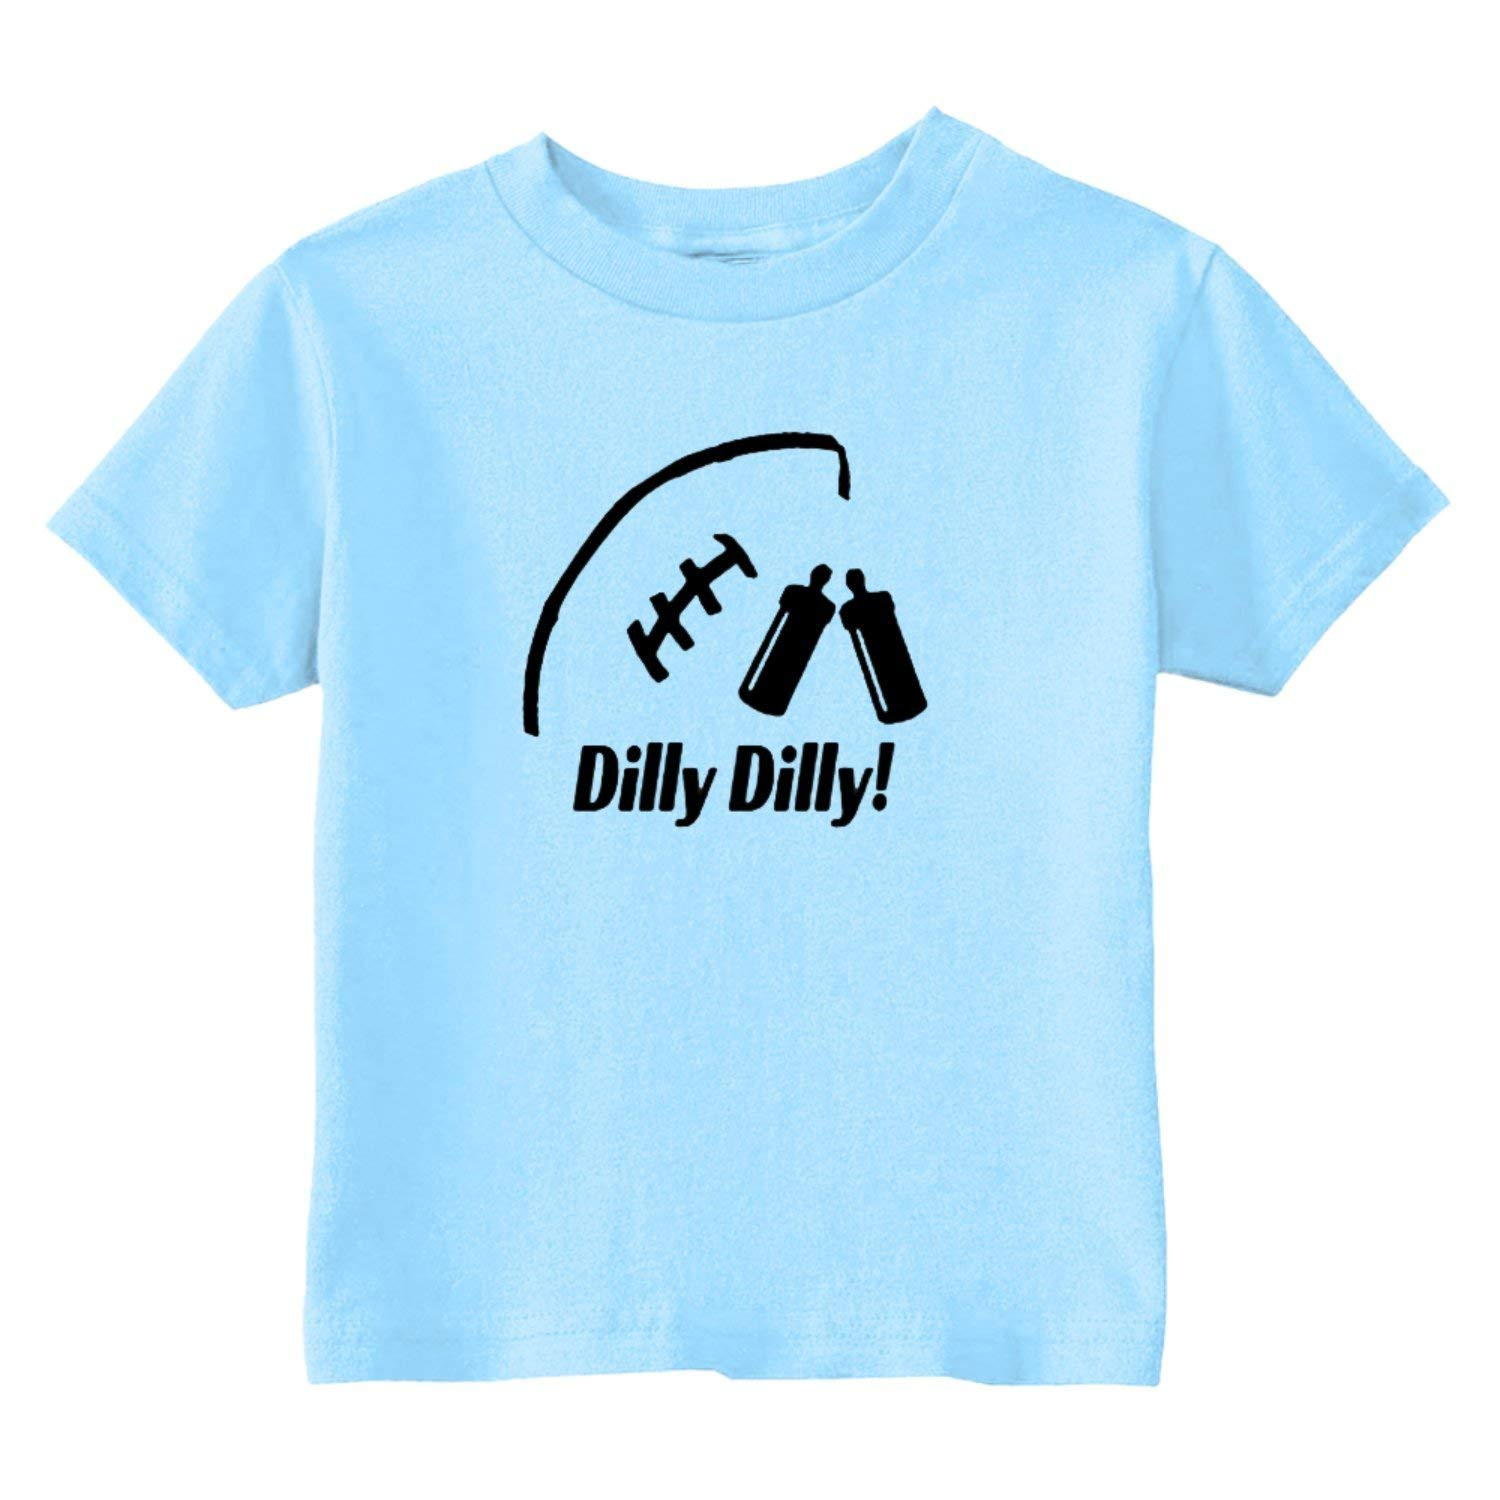 36fa600bd Get Quotations · U.S. Custom Kids Dilly Dilly Football Toddler T-Shirt, 2T,  Light Blue